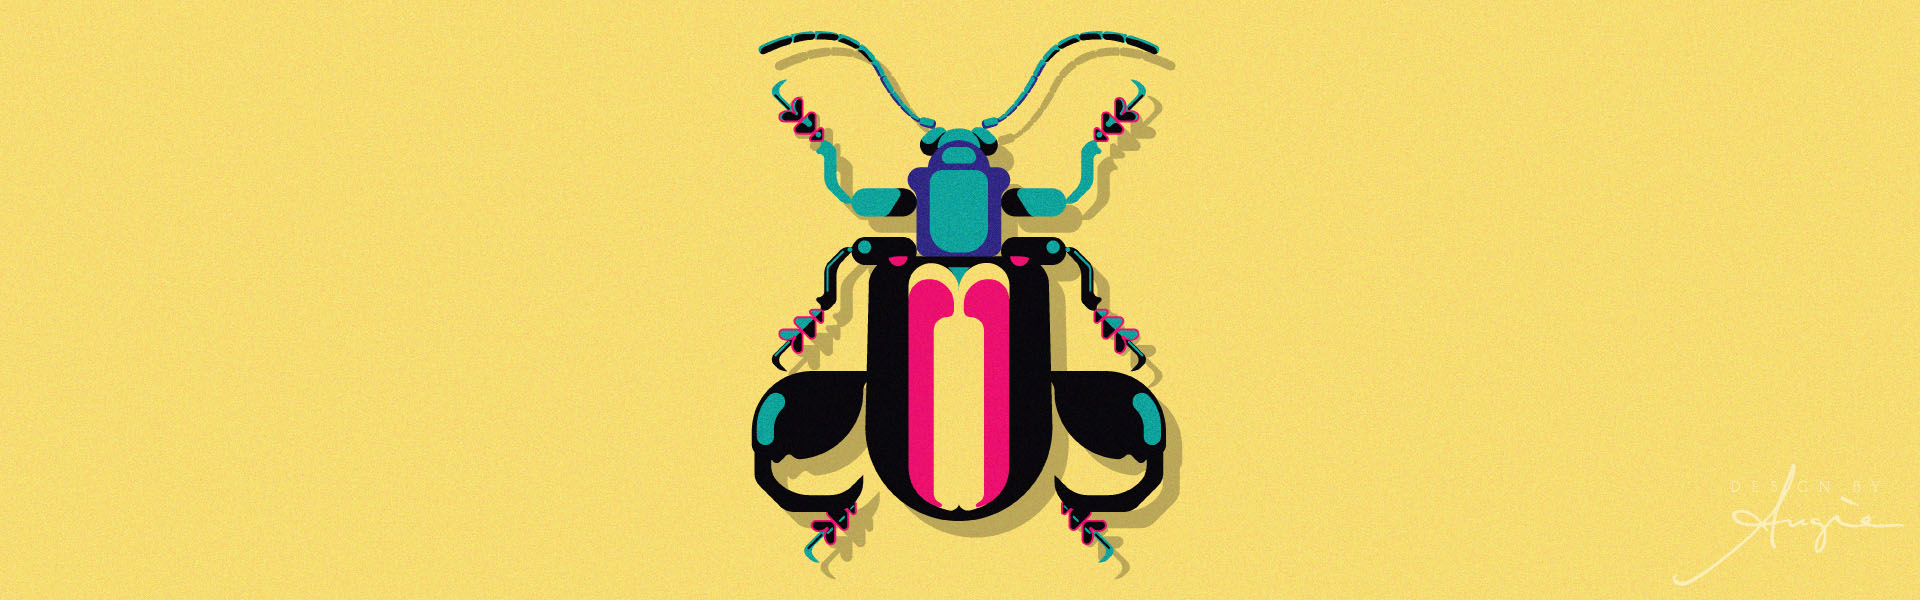 Colorful Bug